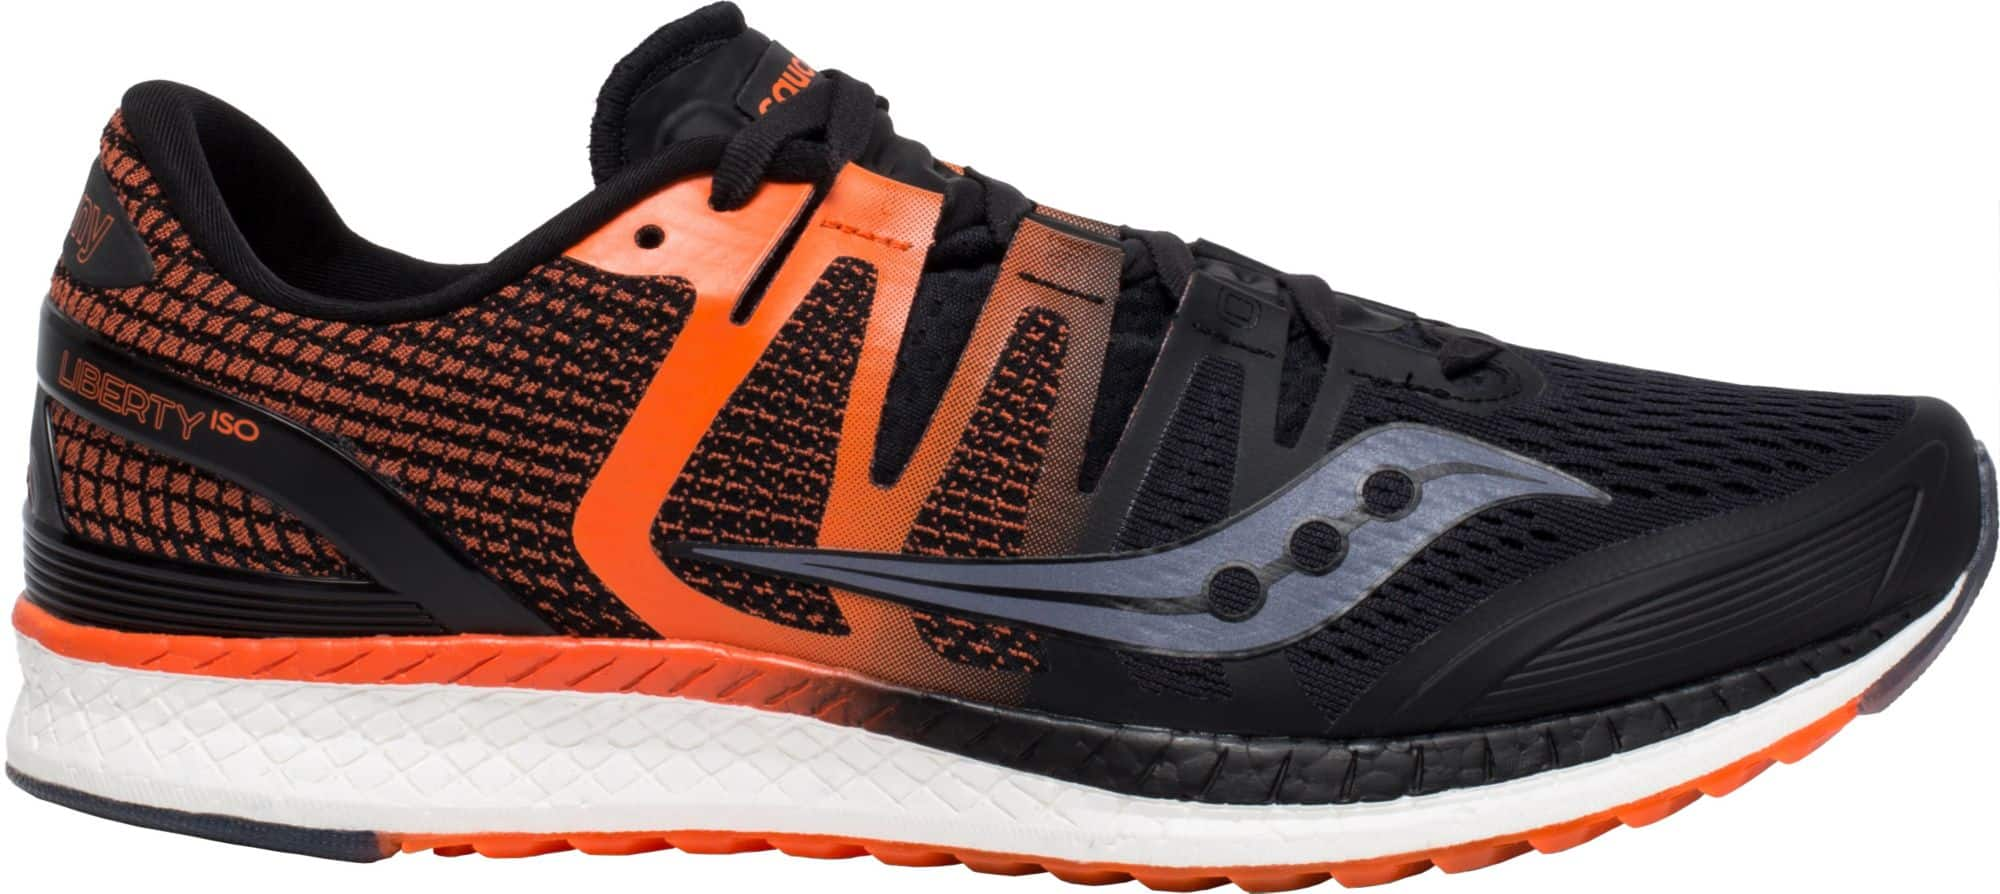 Saucony Liberty ISO running shoes: $45 + Free Shipping